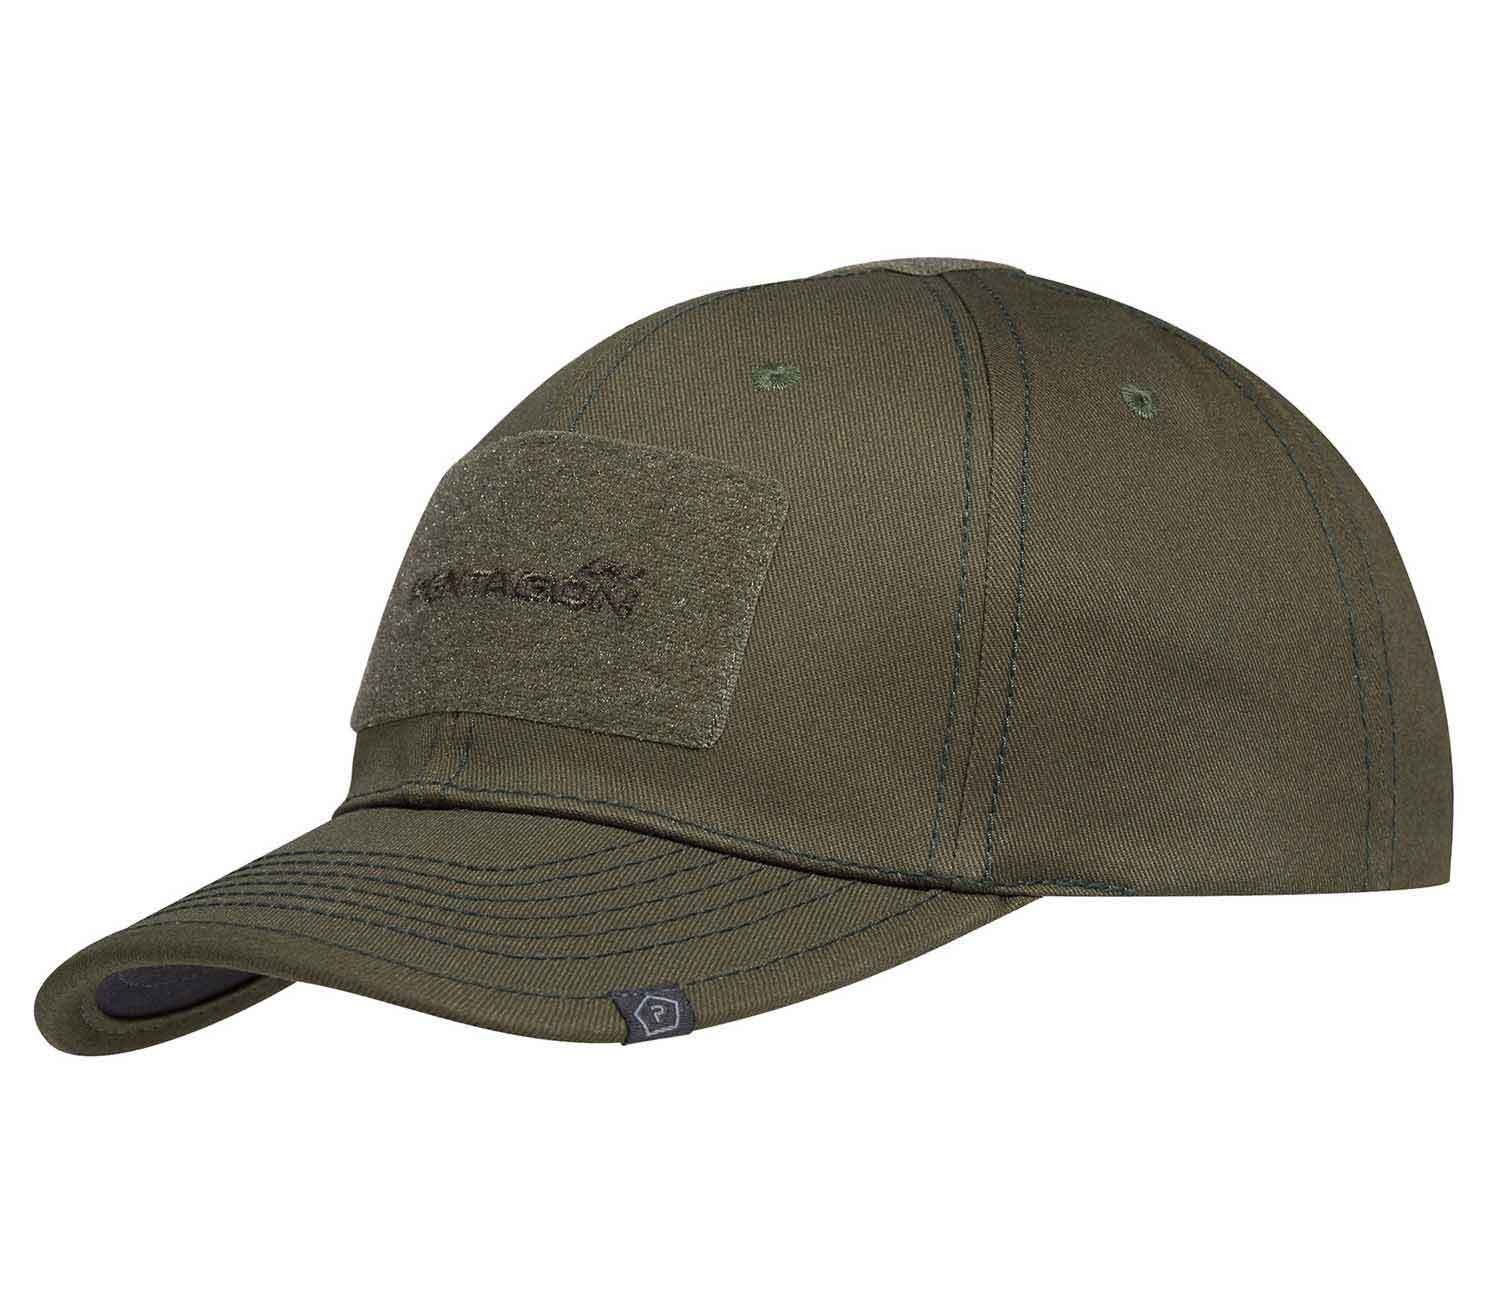 Gorra-Pentagon-Tactical-2.0-Oliva-1.jpg